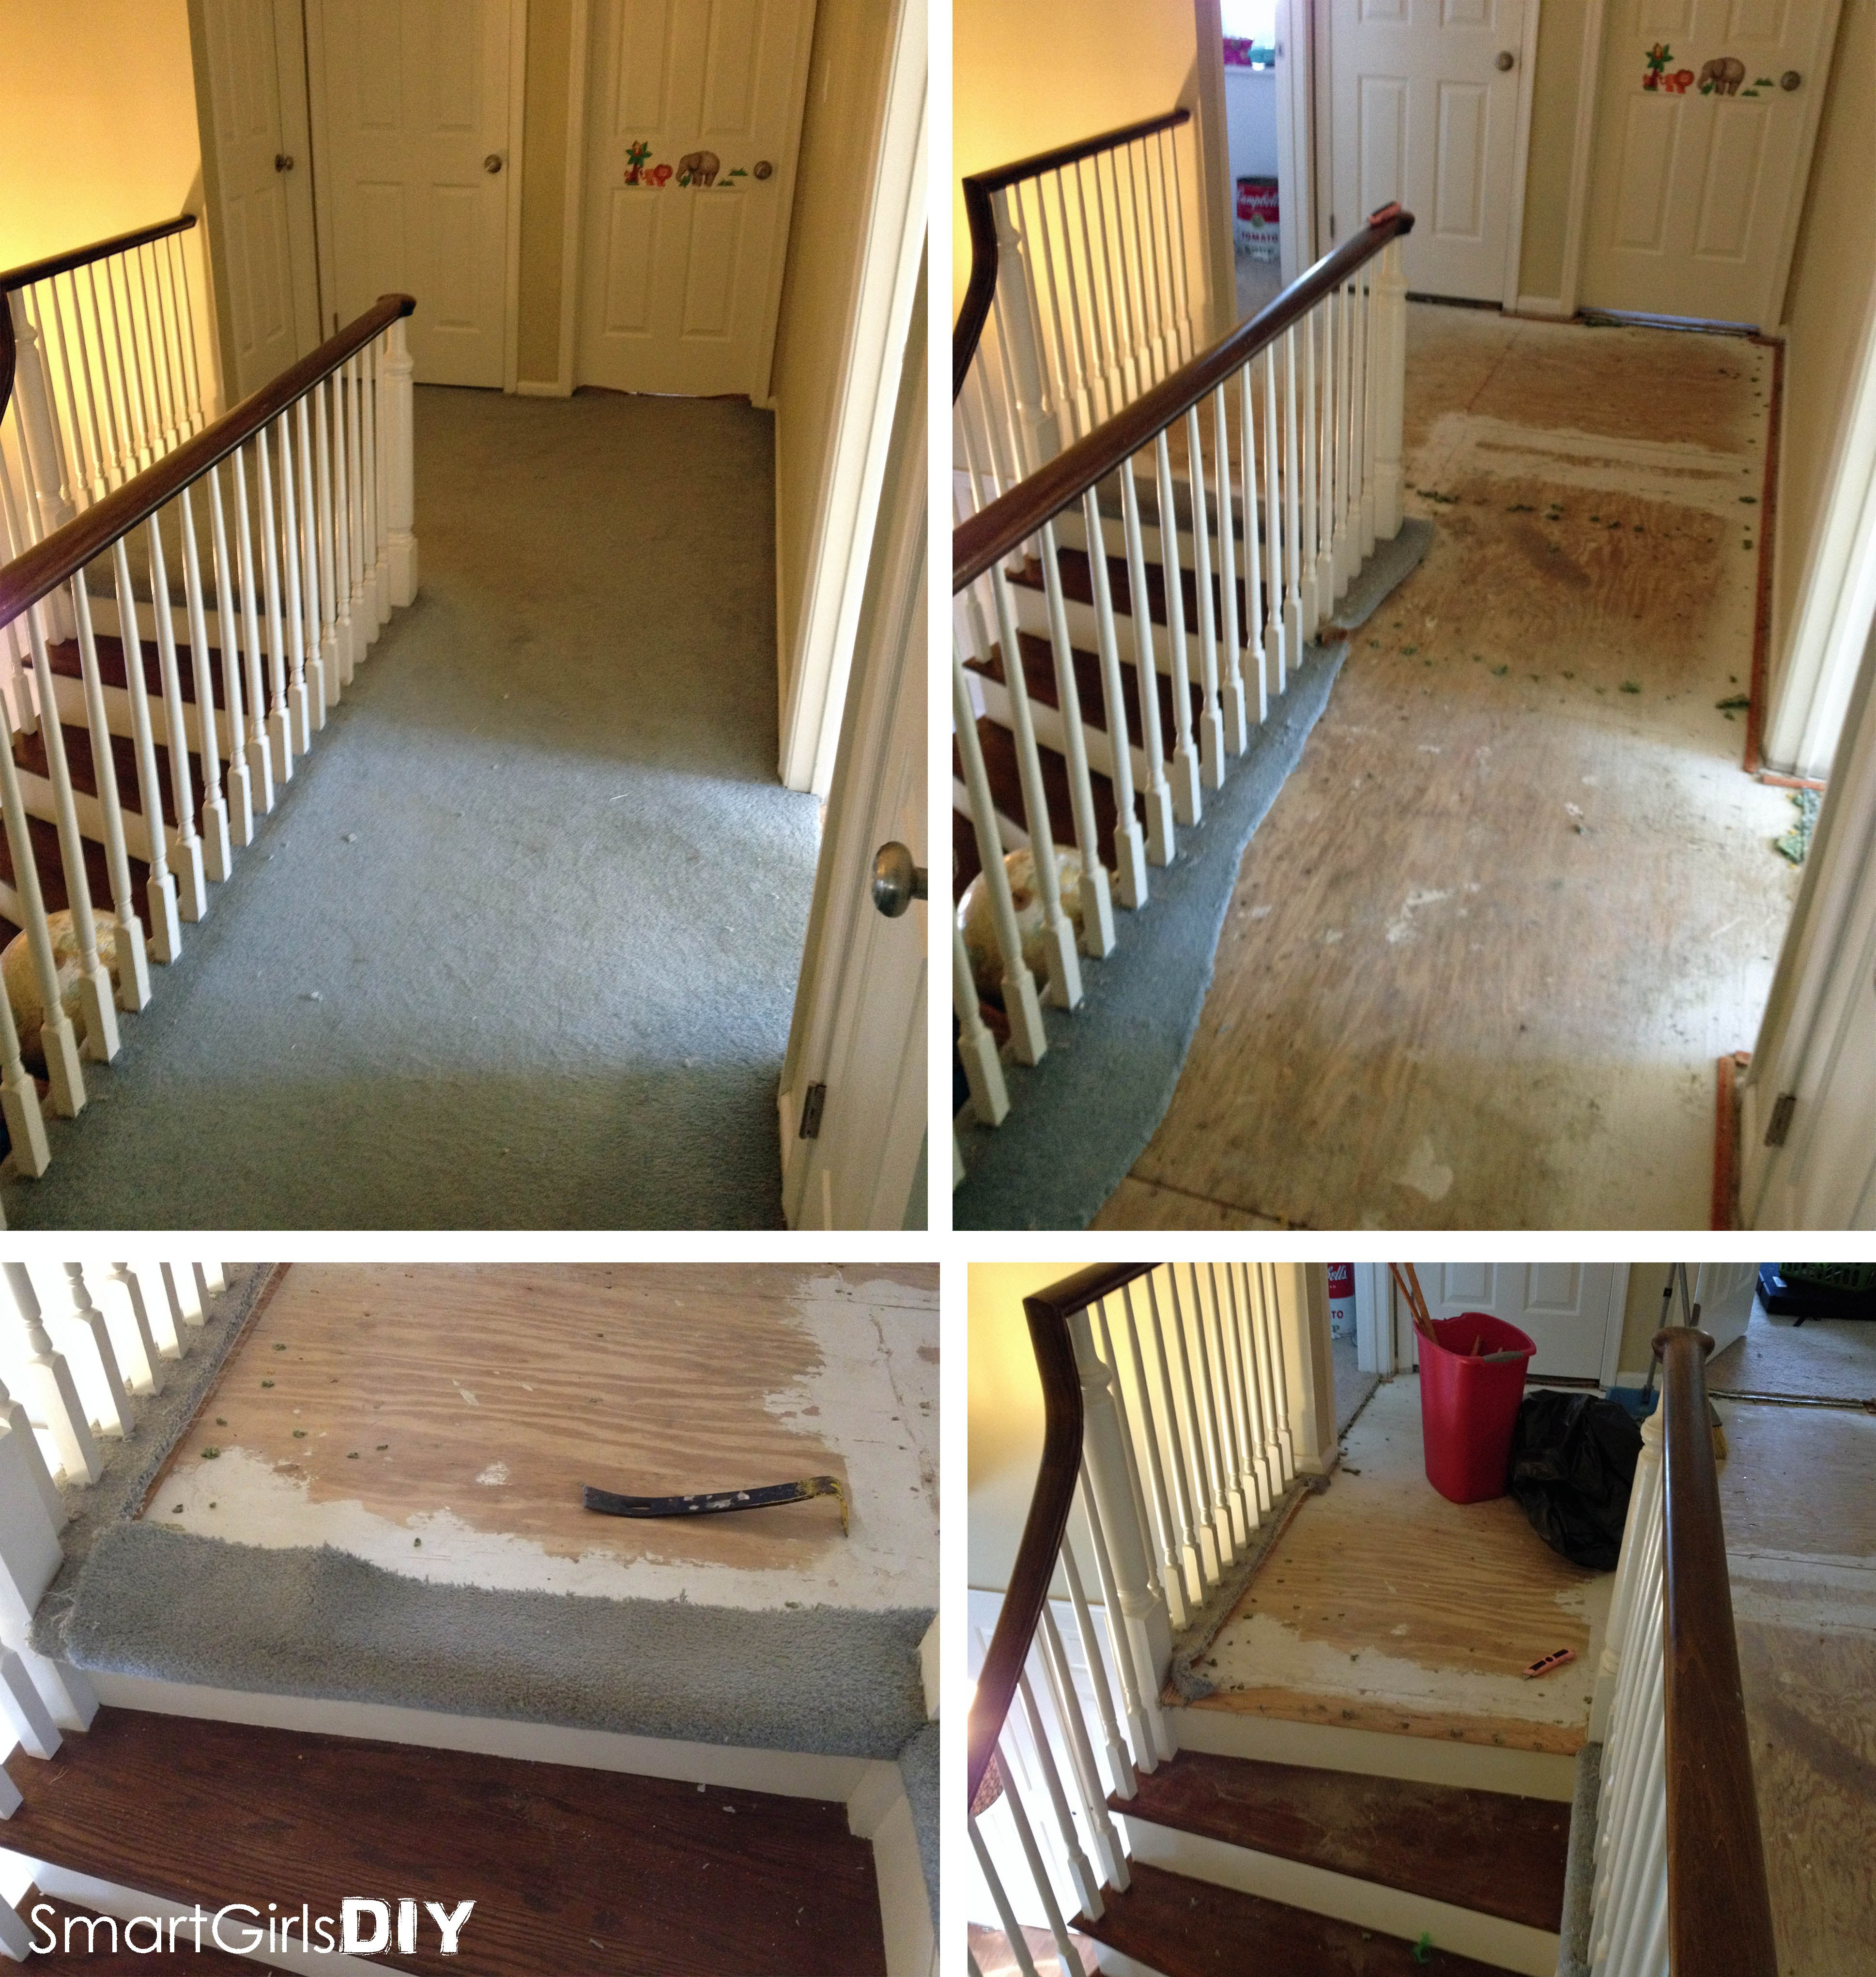 how much does it cost to replace hardwood floors of upstairs hallway 1 installing hardwood floors for removing carpet from hallway installing the hardwood floor